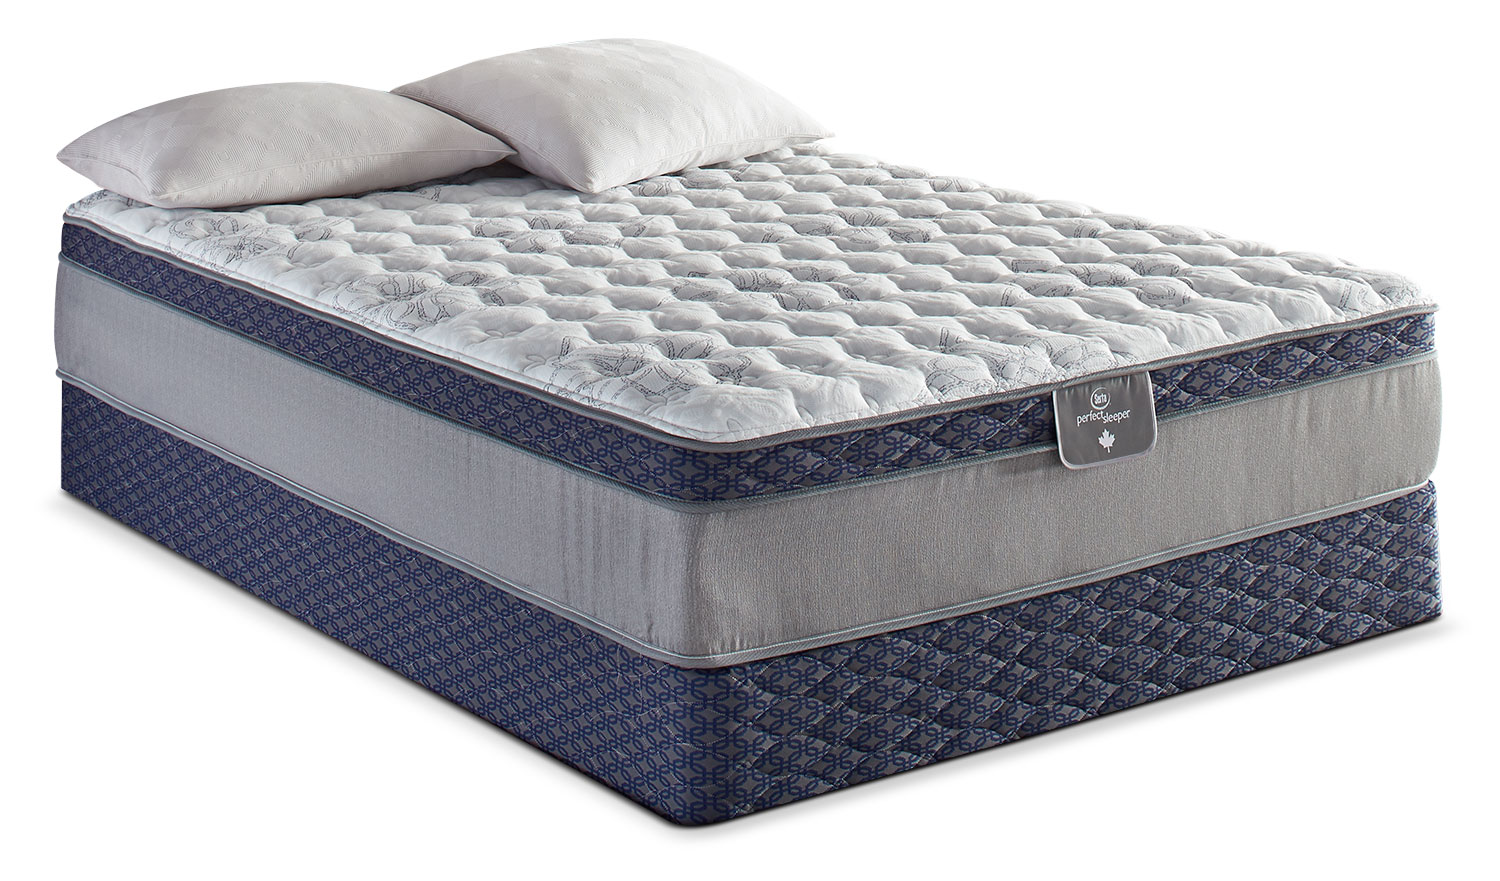 Serta Perfect Sleeper 85th Anniversary Euro-Top Firm Full Mattress Set